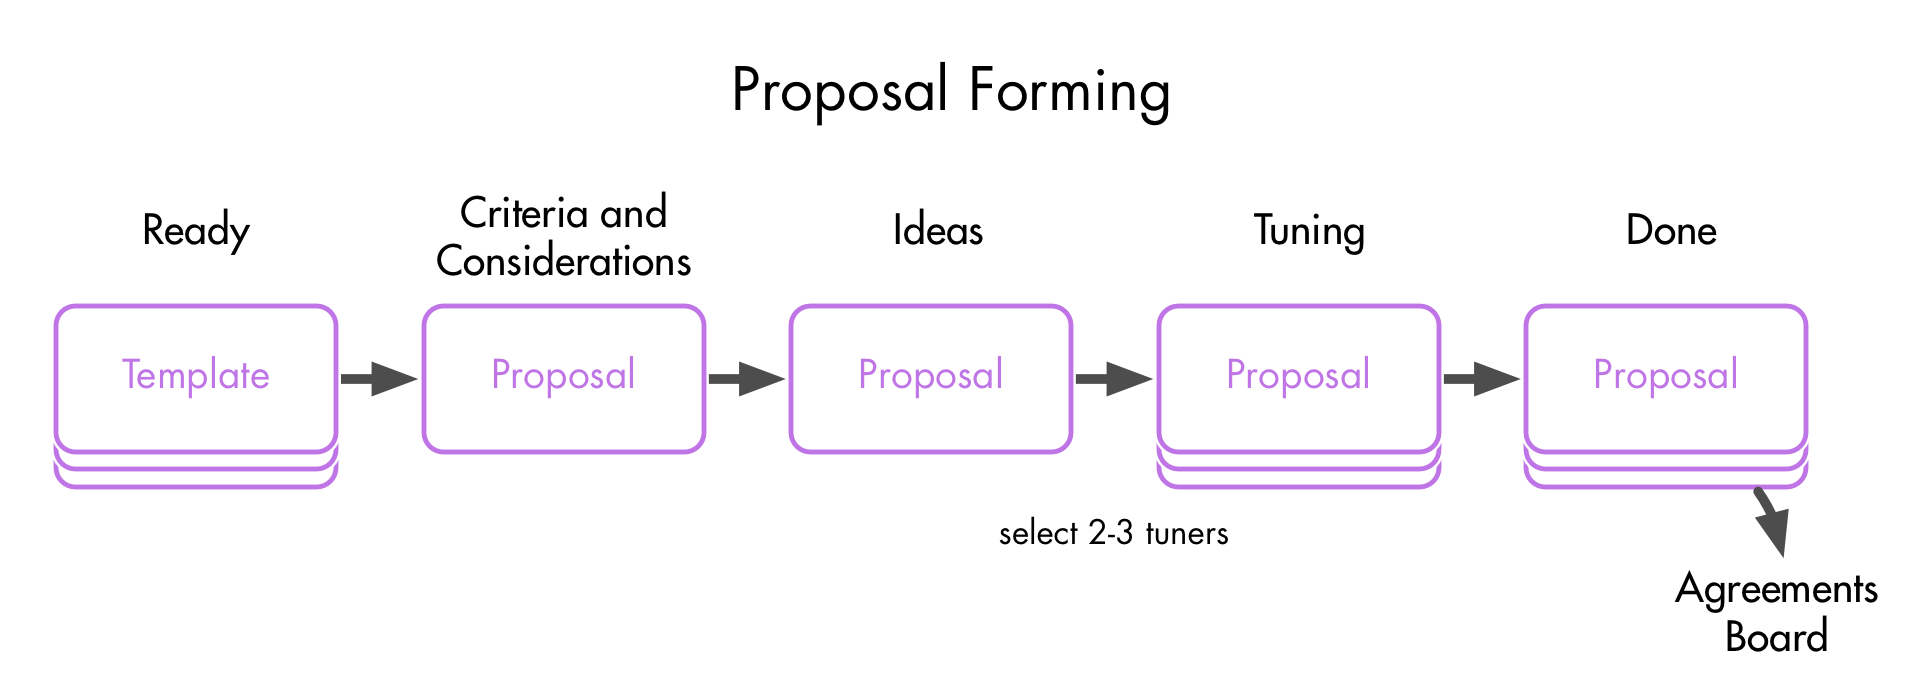 proposal-forming